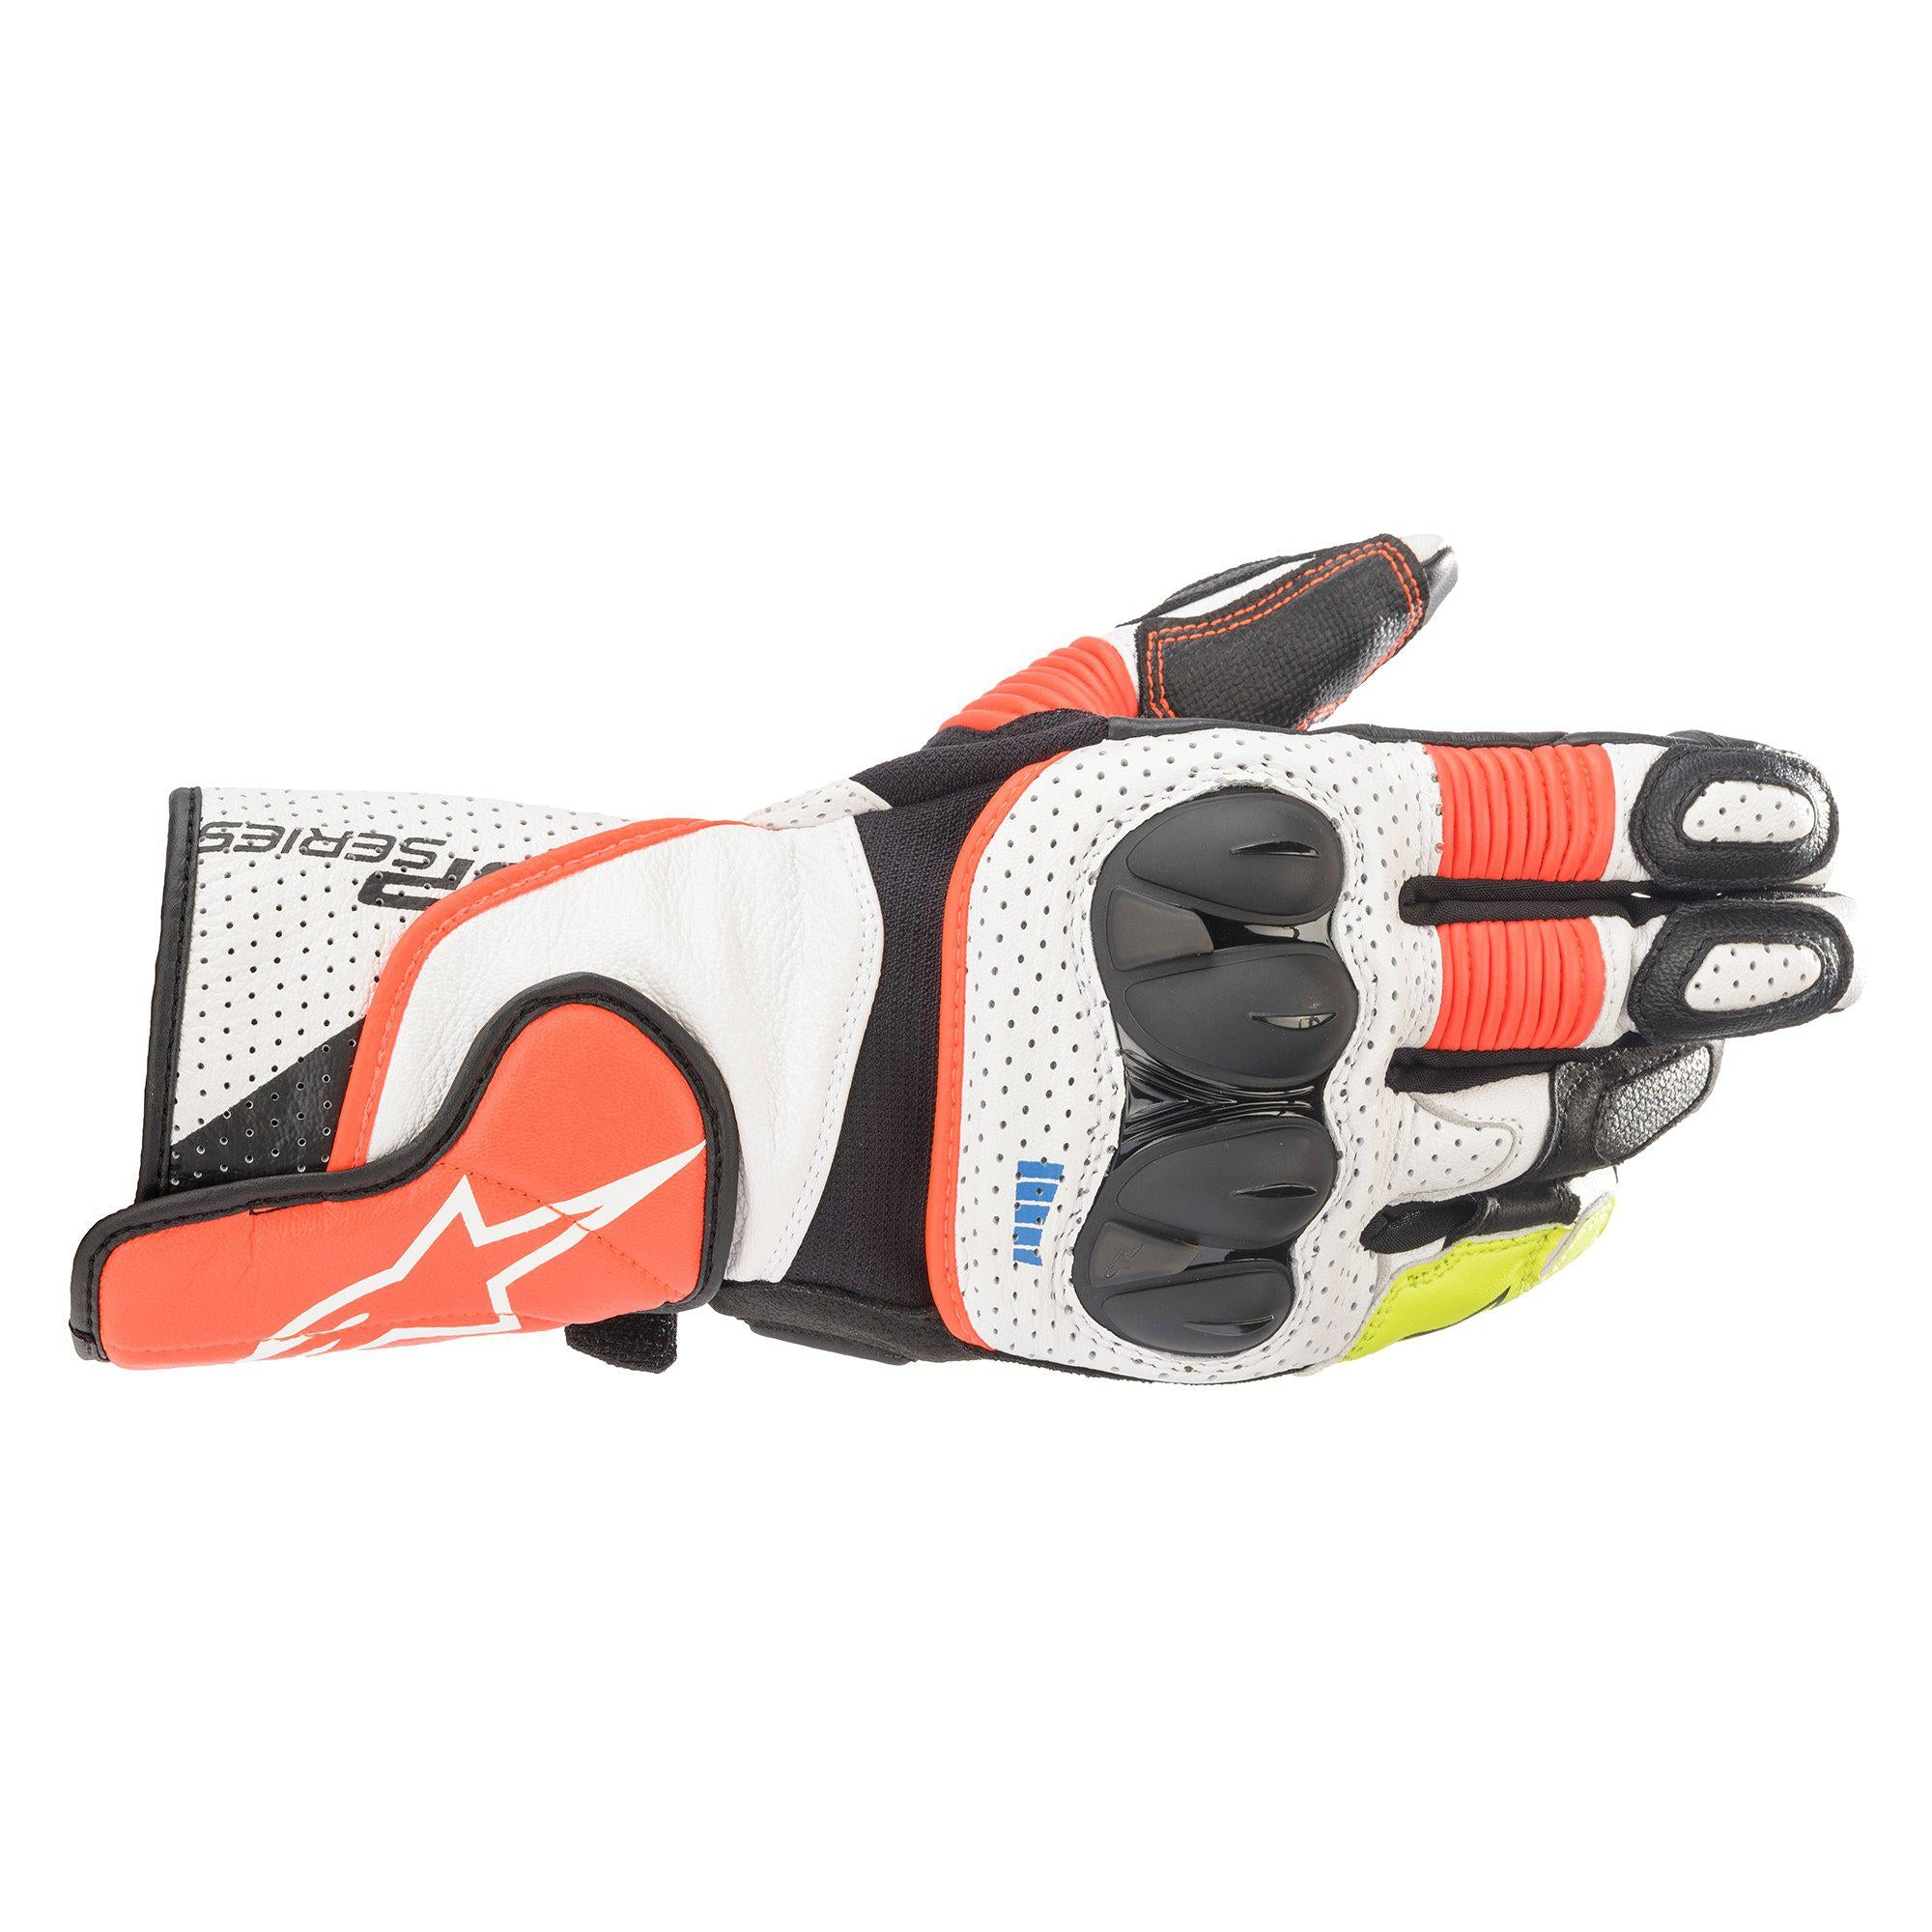 SP-2 V3 Gloves